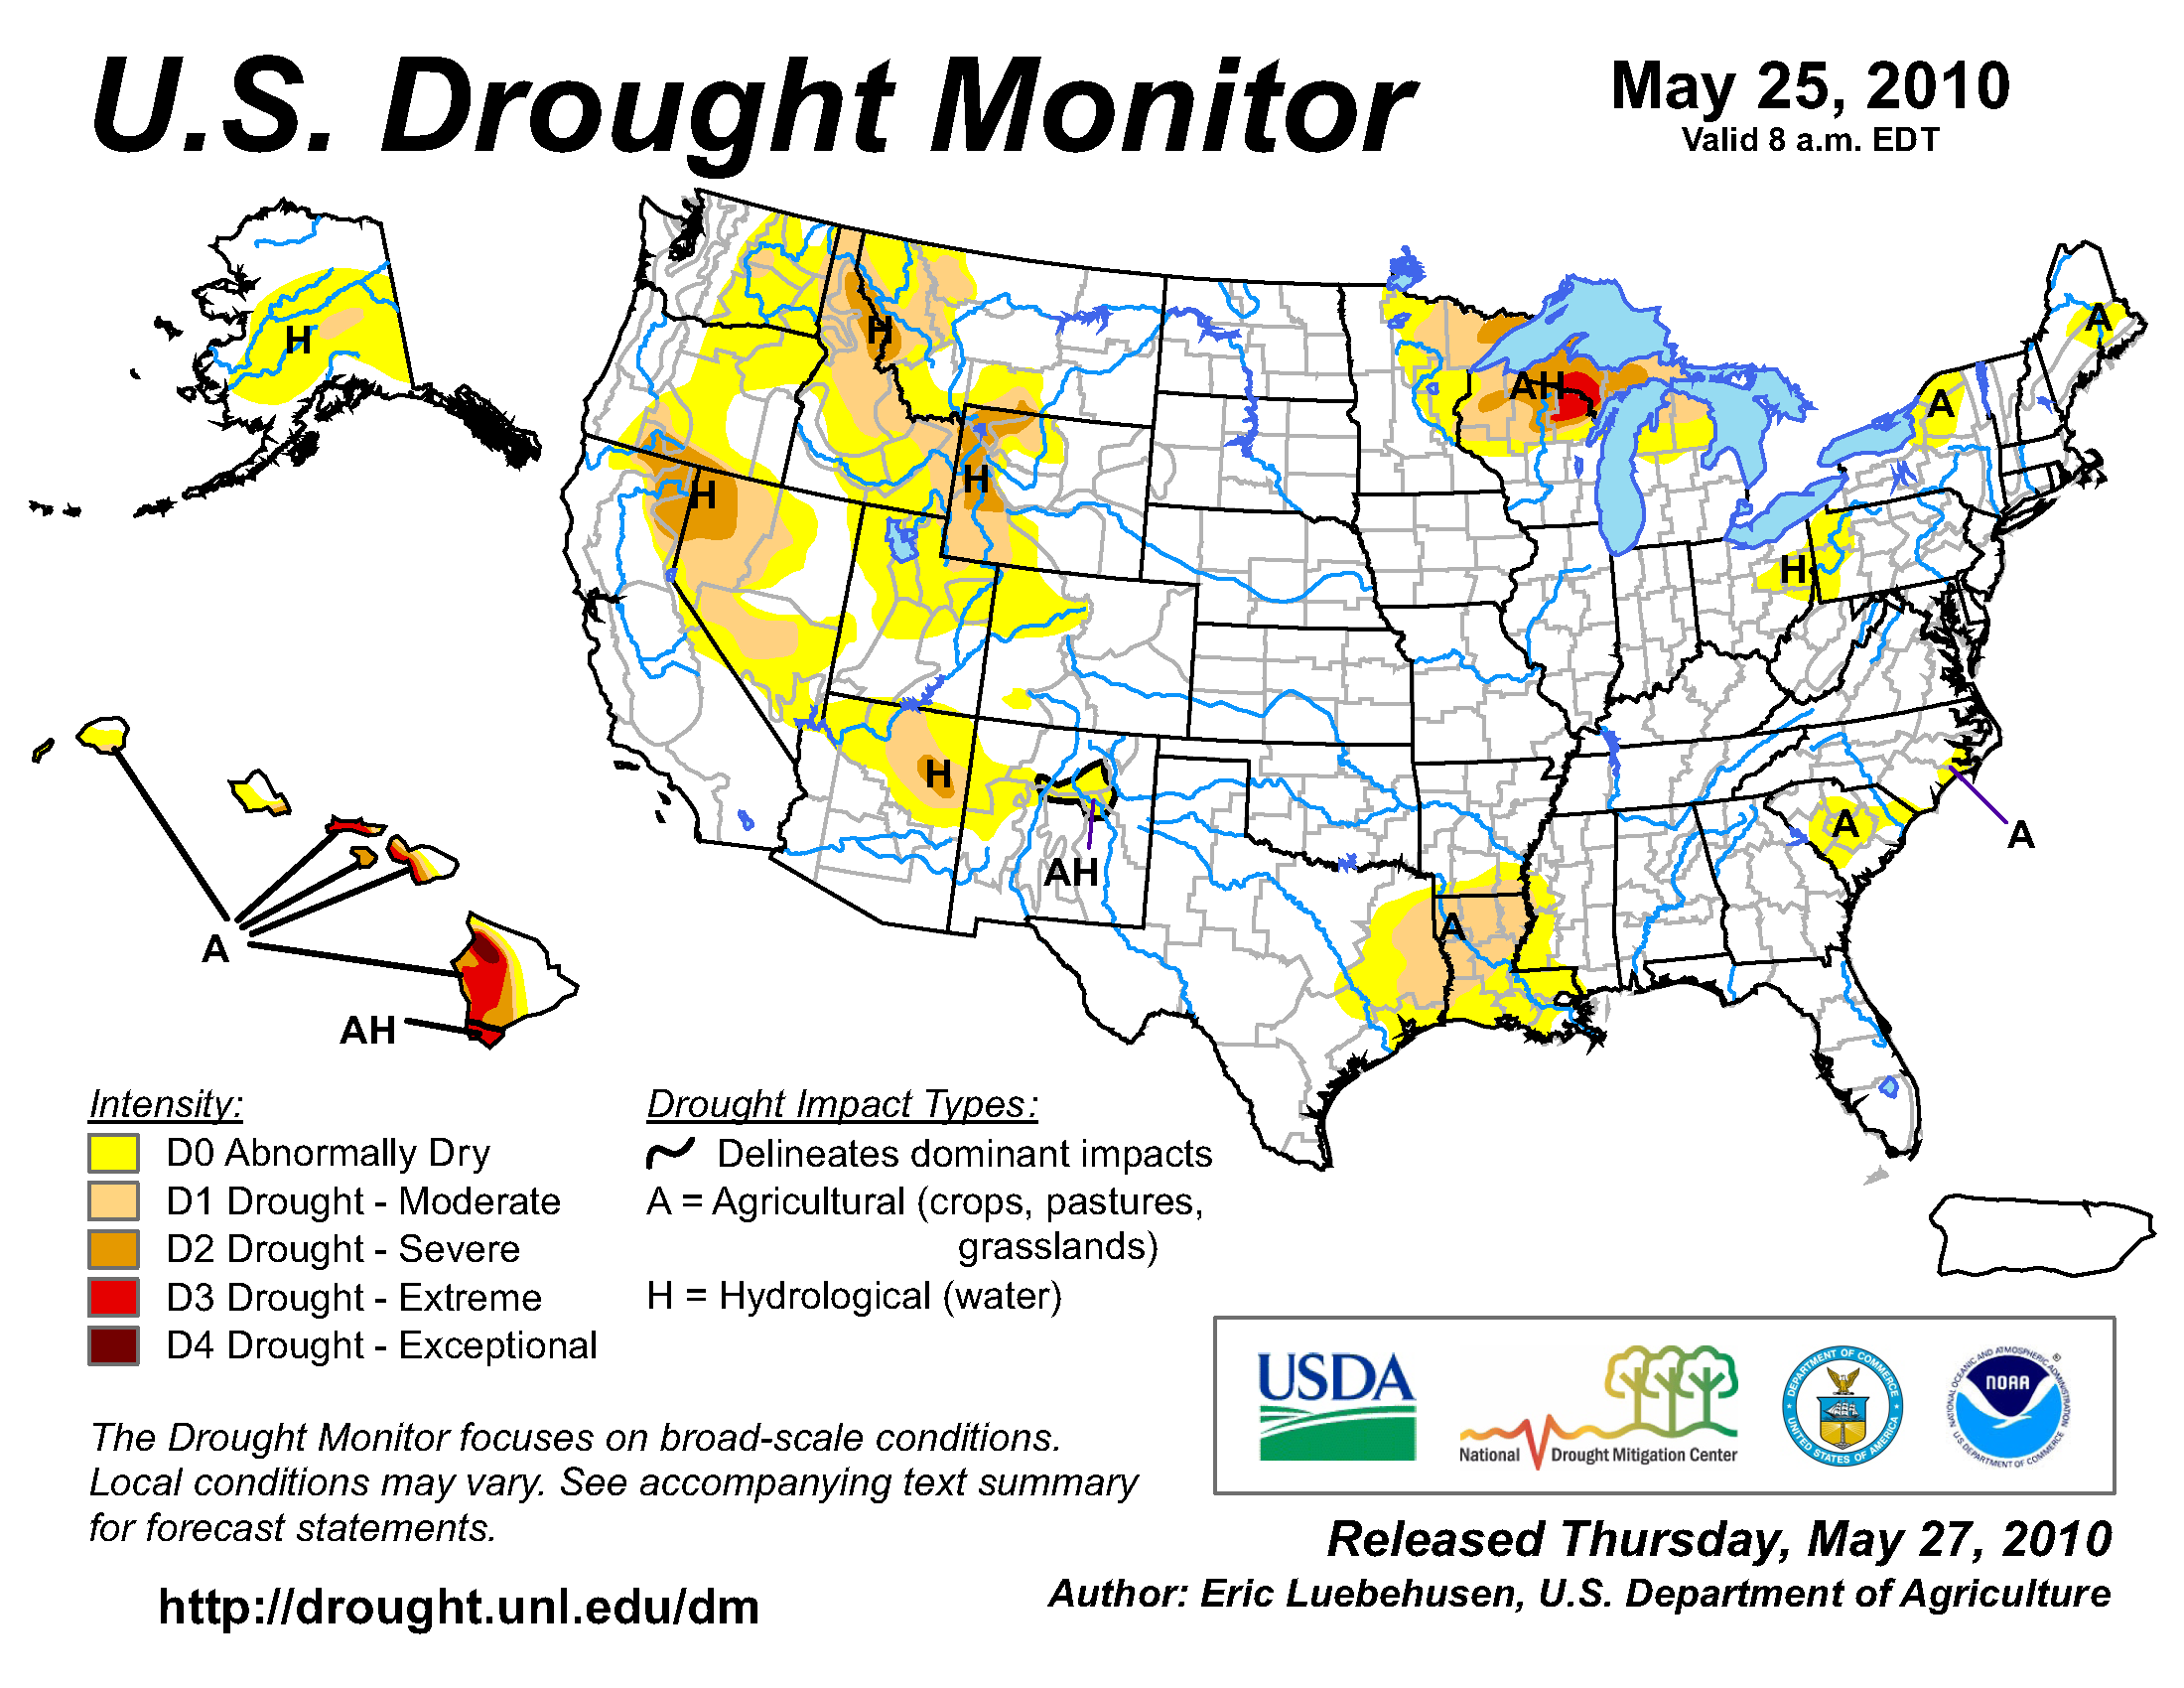 U.S. Drought Monitor map from 25 May 2010